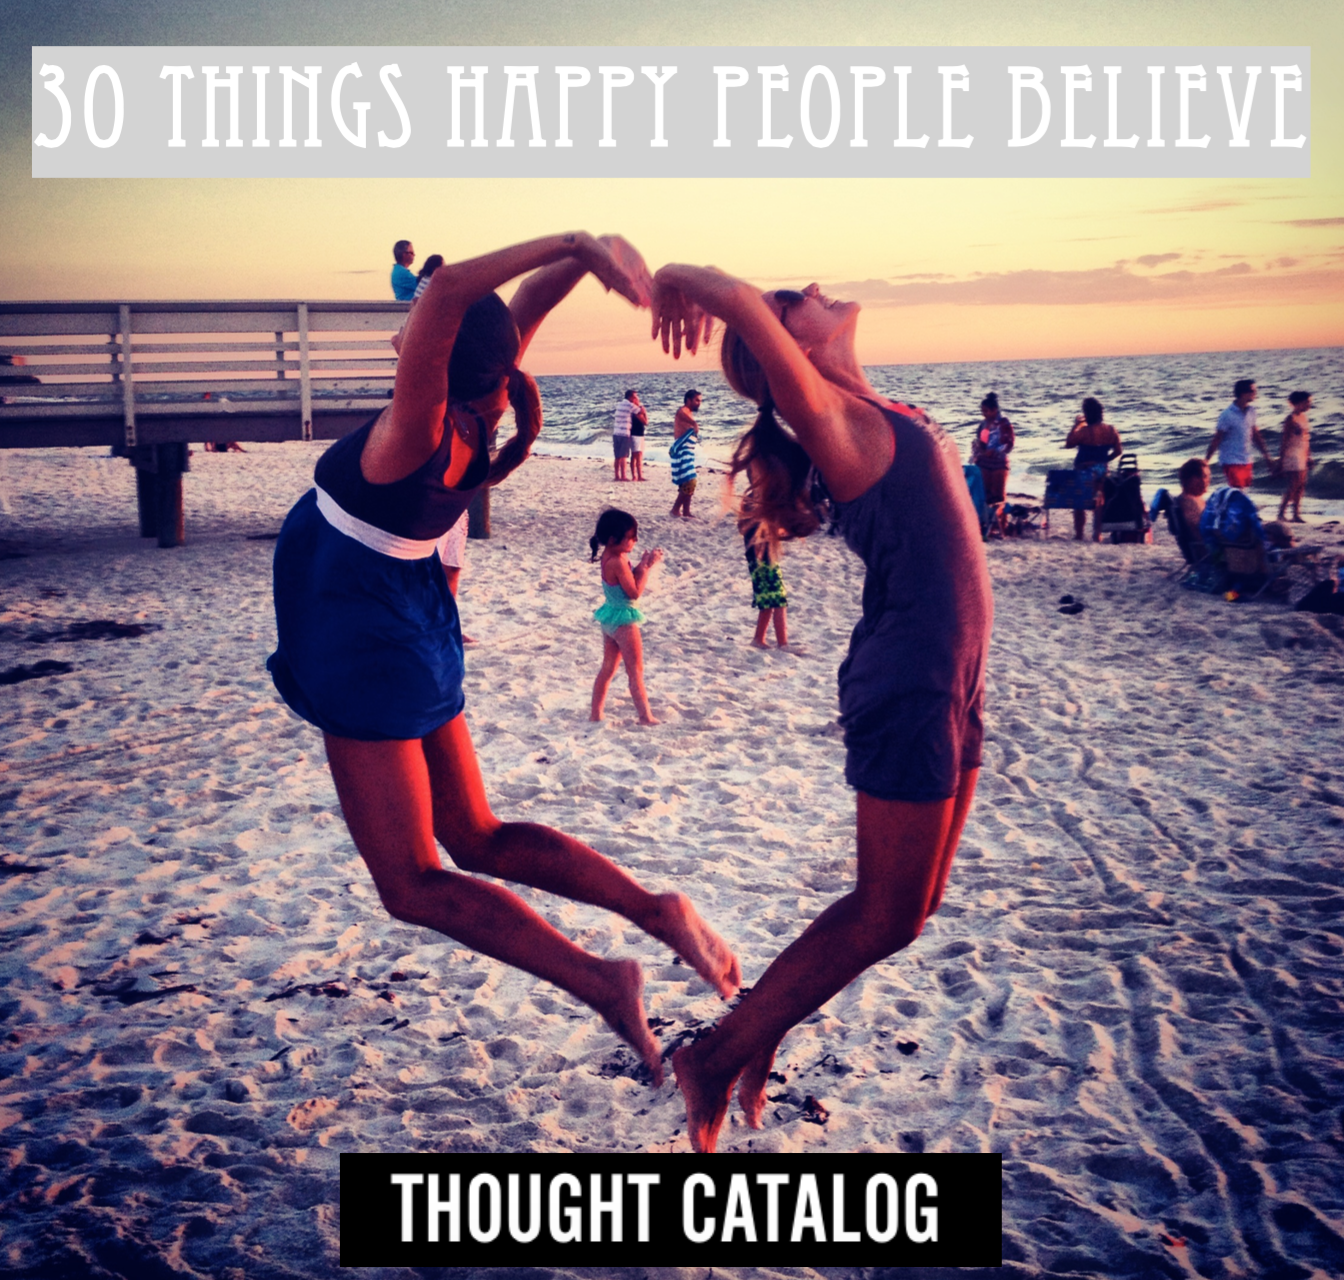 30 Things Happy People Believe carly benson